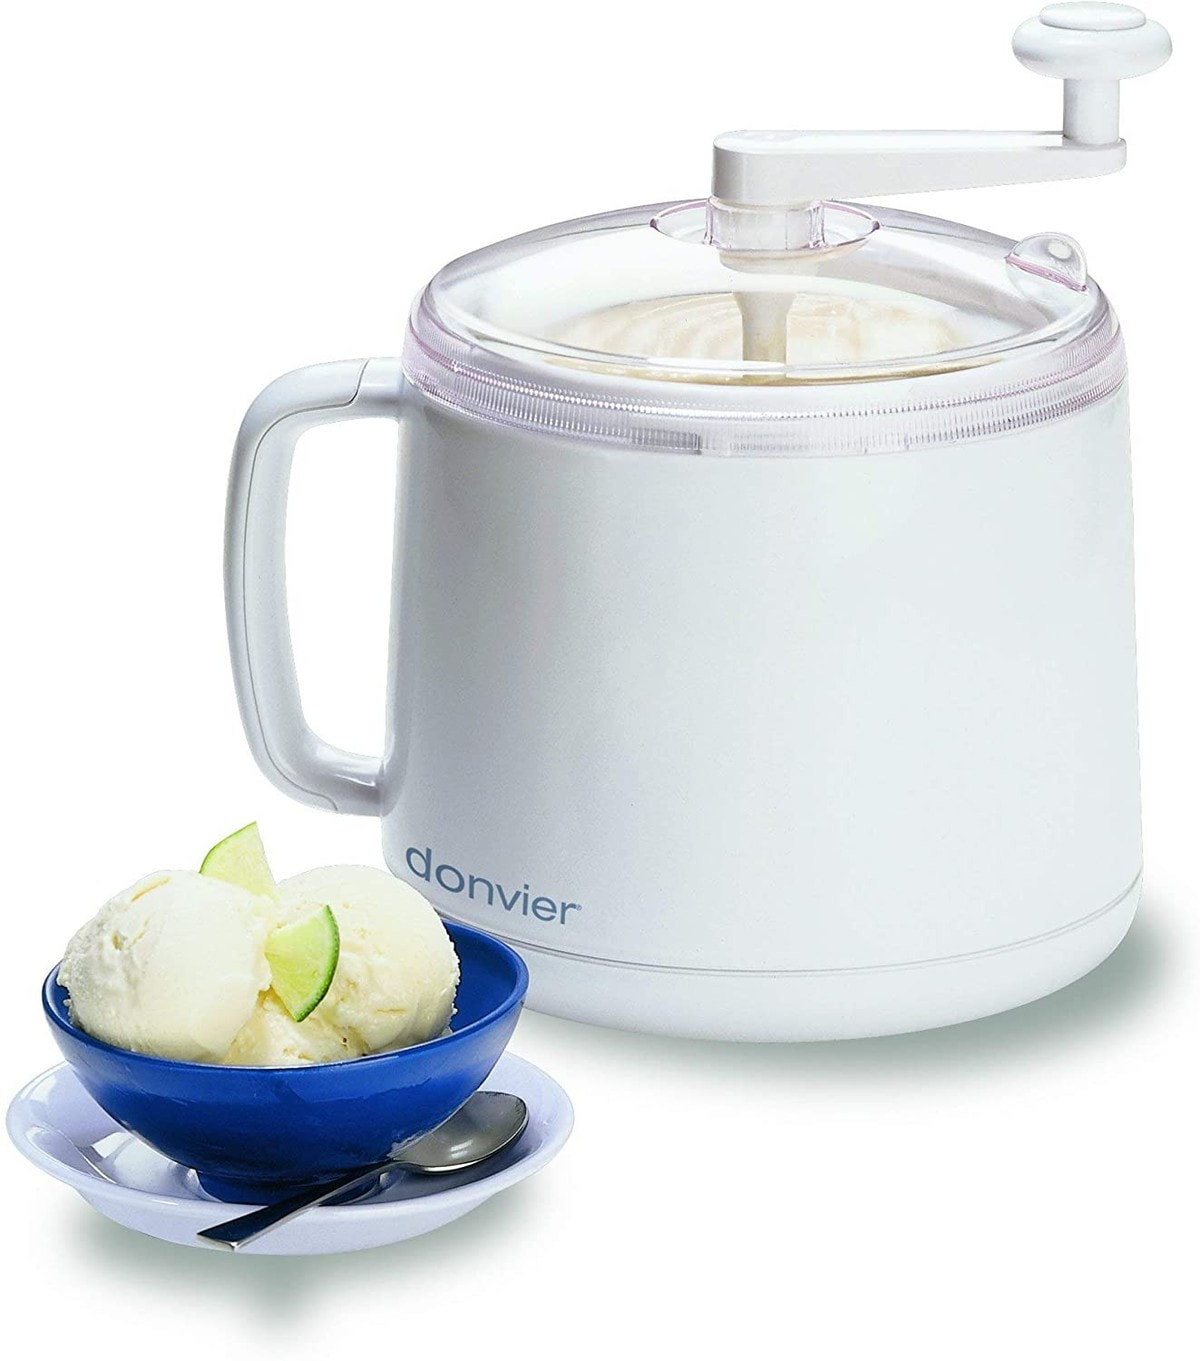 Donvier 837450 Manual Ice Cream Maker - Best Overall